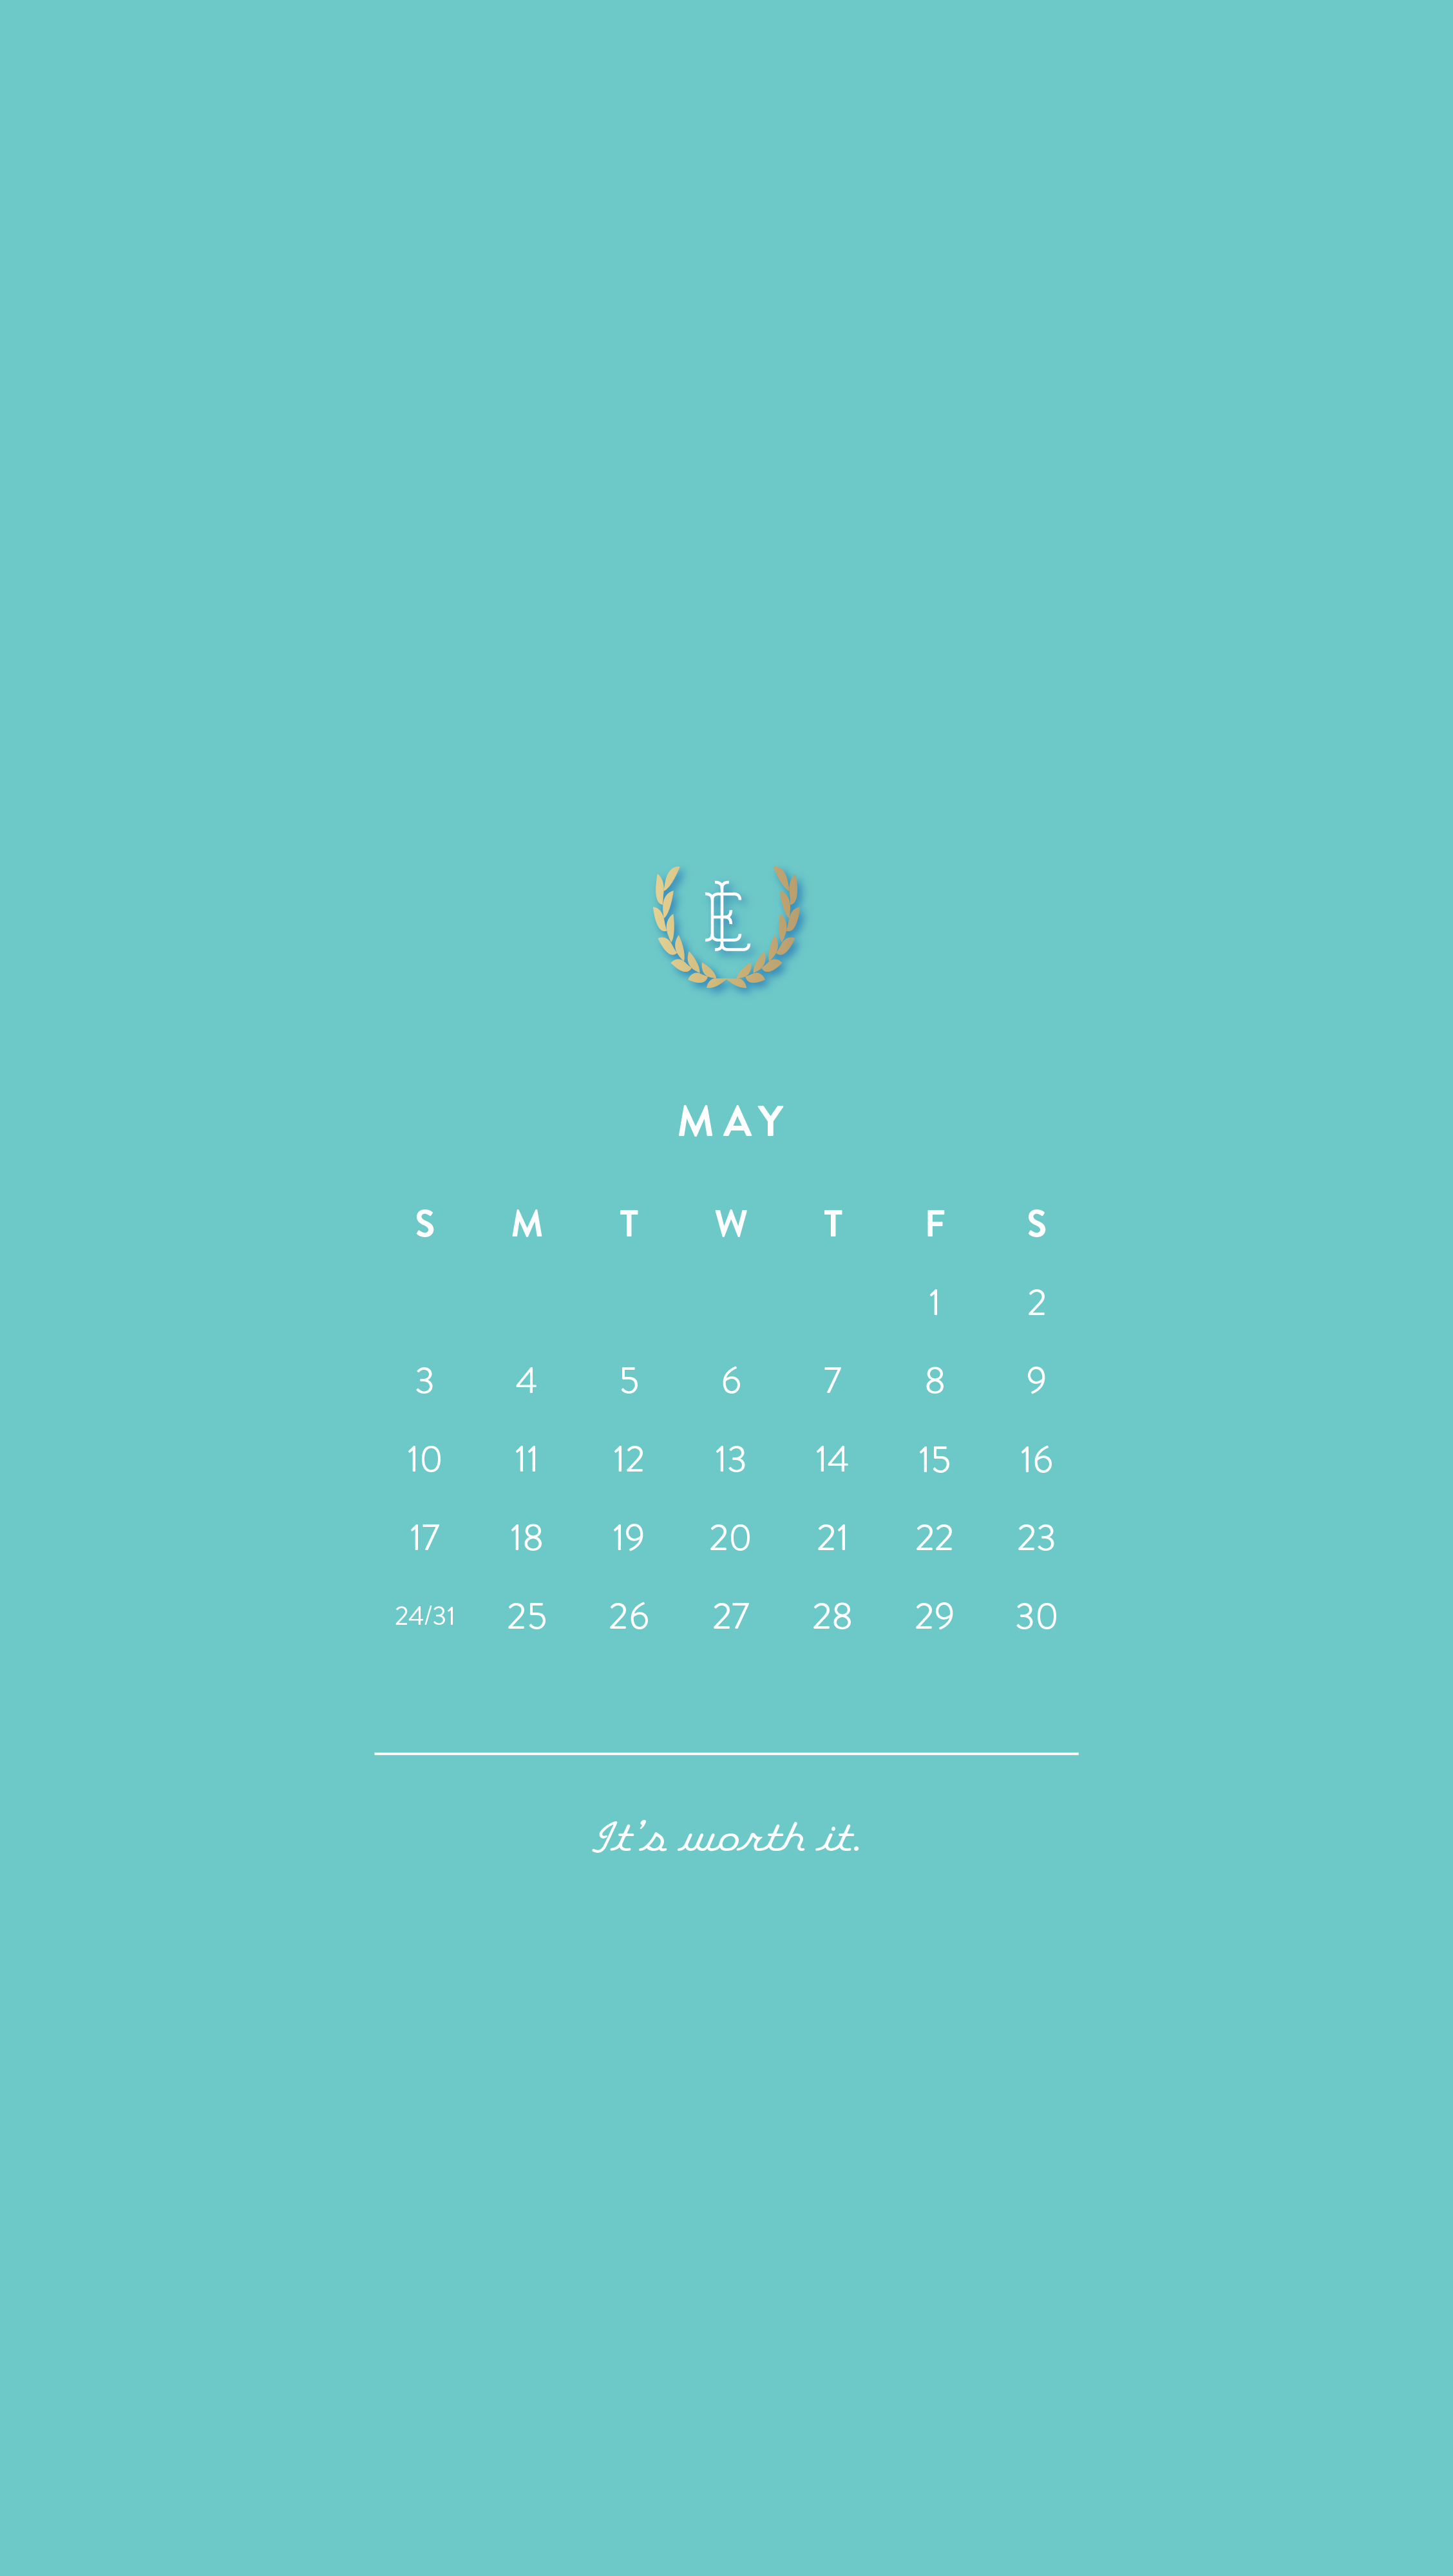 Iphone wallpaper the dress decoded - Disclaimer This Last One Is From 2014 But If You Don T Care About The Calendar As Much It S Really Pretty Via Oanabefort Com